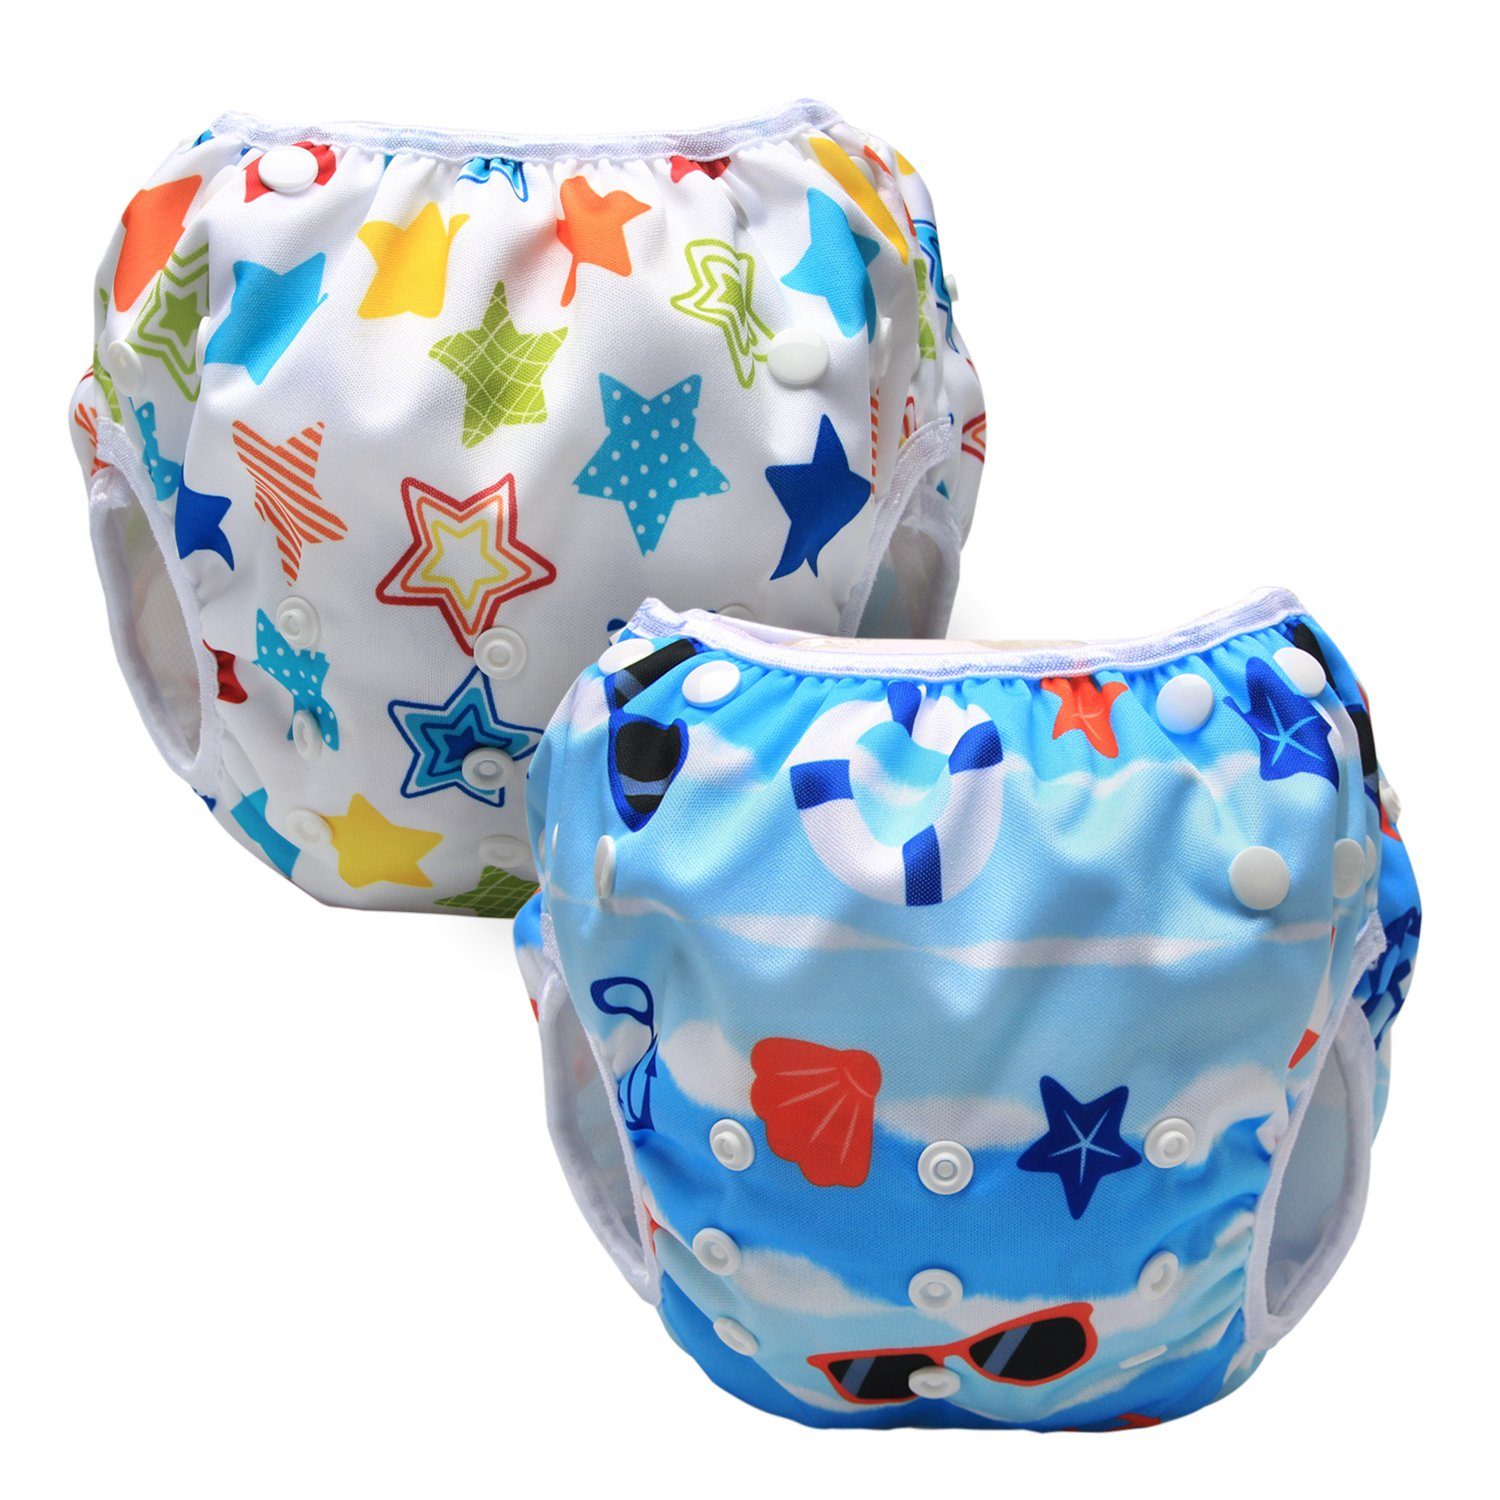 LUXJA Reusable Swim Diaper (Pack of 2), Adjustable Swimming Diaper for Baby (0-3 Years), Beach + Colorful Stars